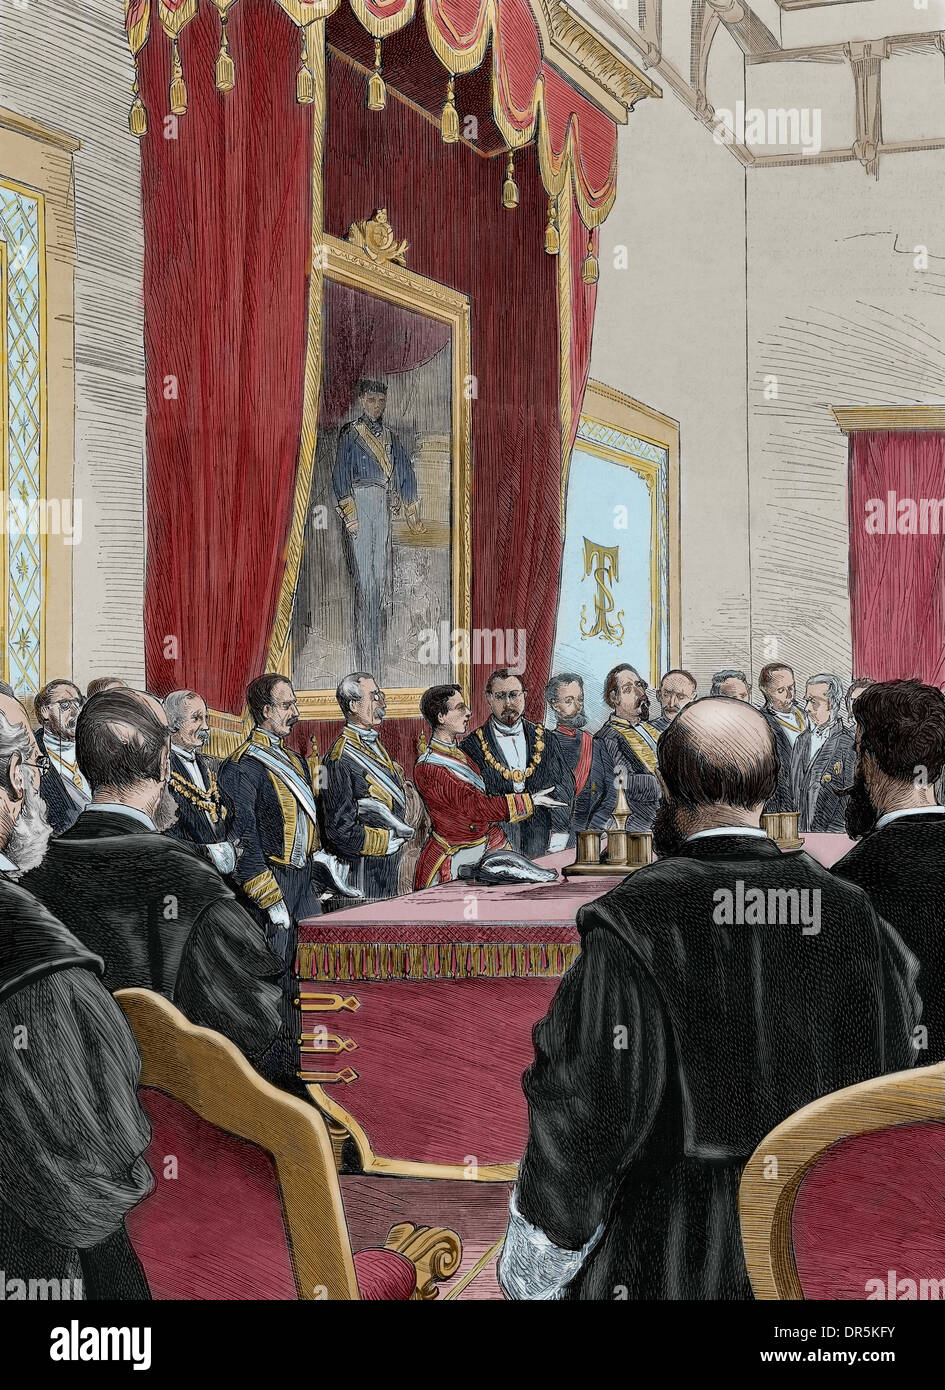 Alphonse XII (1857-1885). King of Spain. King giving a speech at the opening session of the courts of the kingdom. Engraving. - Stock Image